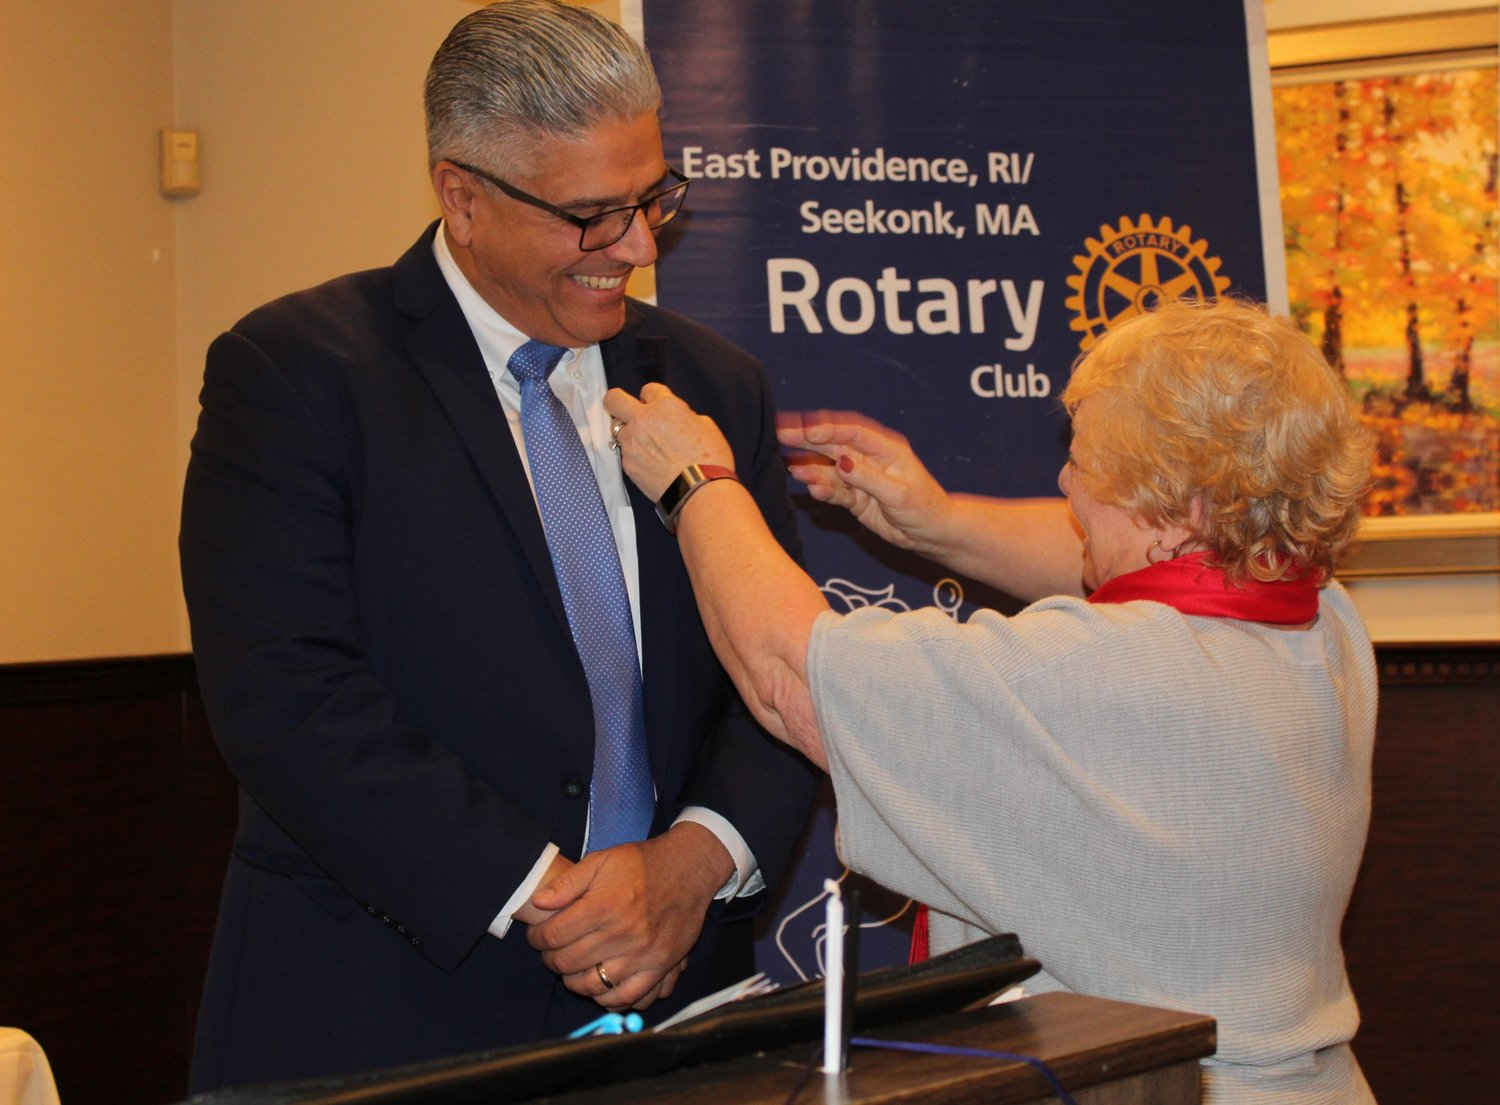 Roberto DaSilva was inducted into the East Providence/Seekonk Rotary Club by Renate Alexander and his sponsor Valerie Perry